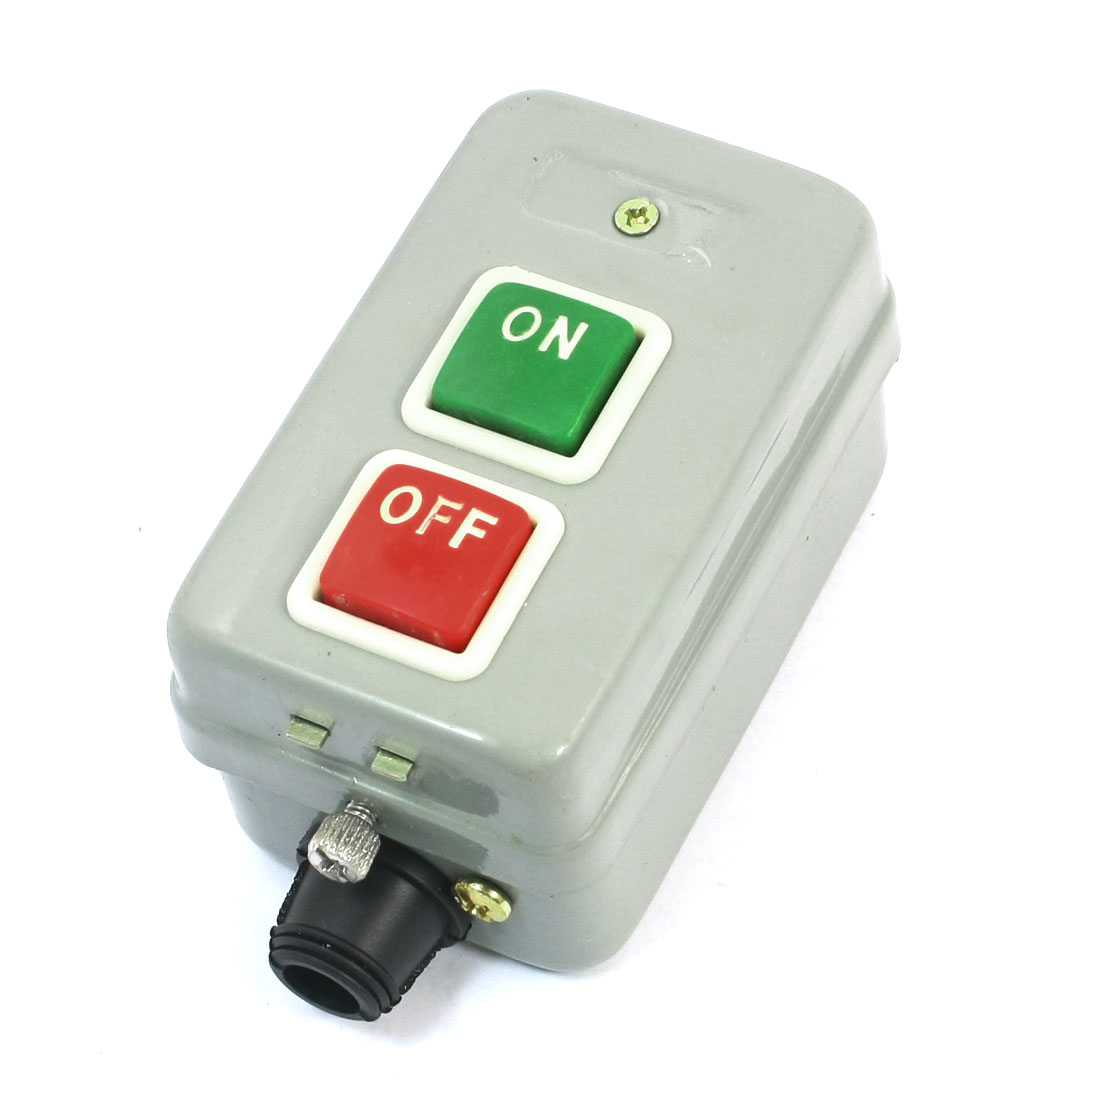 Hoist Crane ON/OFF Latching Control Station 3 Phase Power Push Button Switch